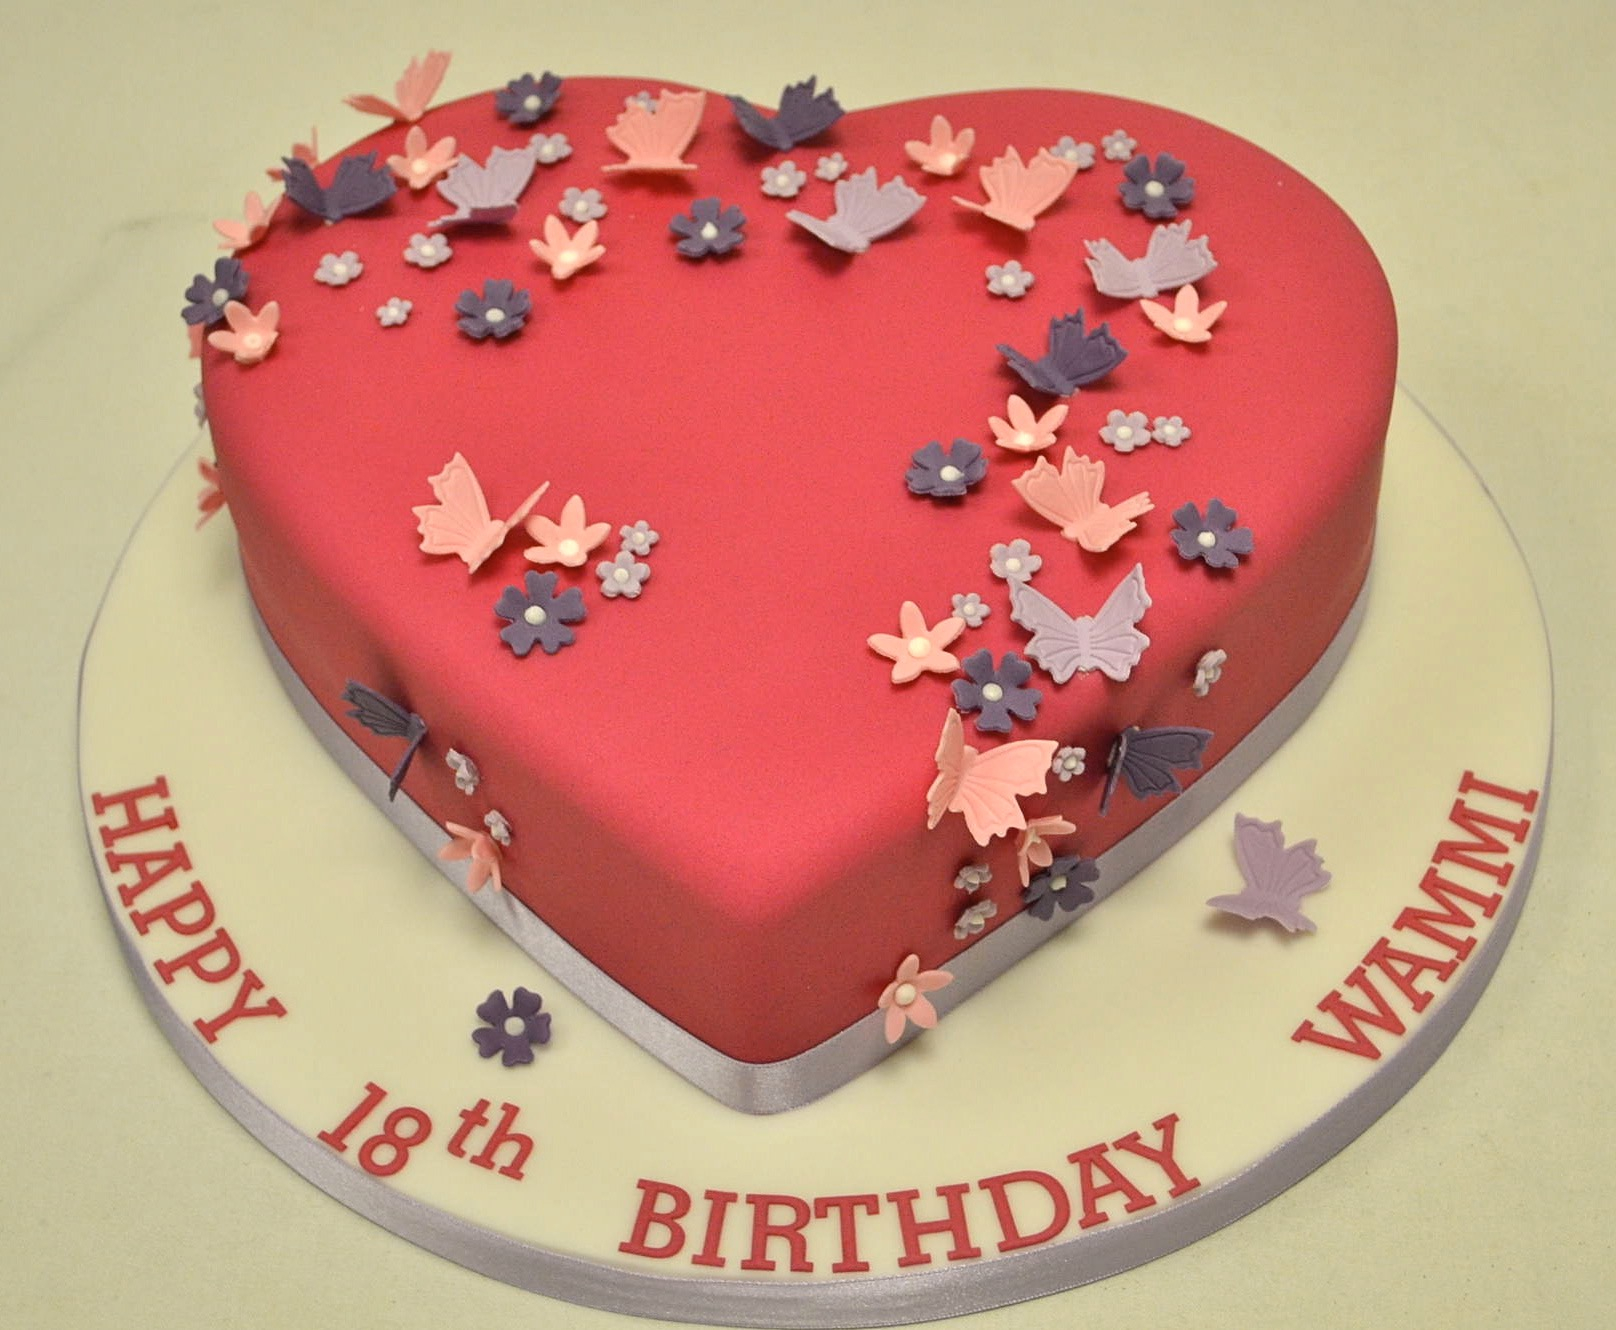 Birthday Cakes For Girls Heart Shaped Blossom And Butterfly 18th Cake